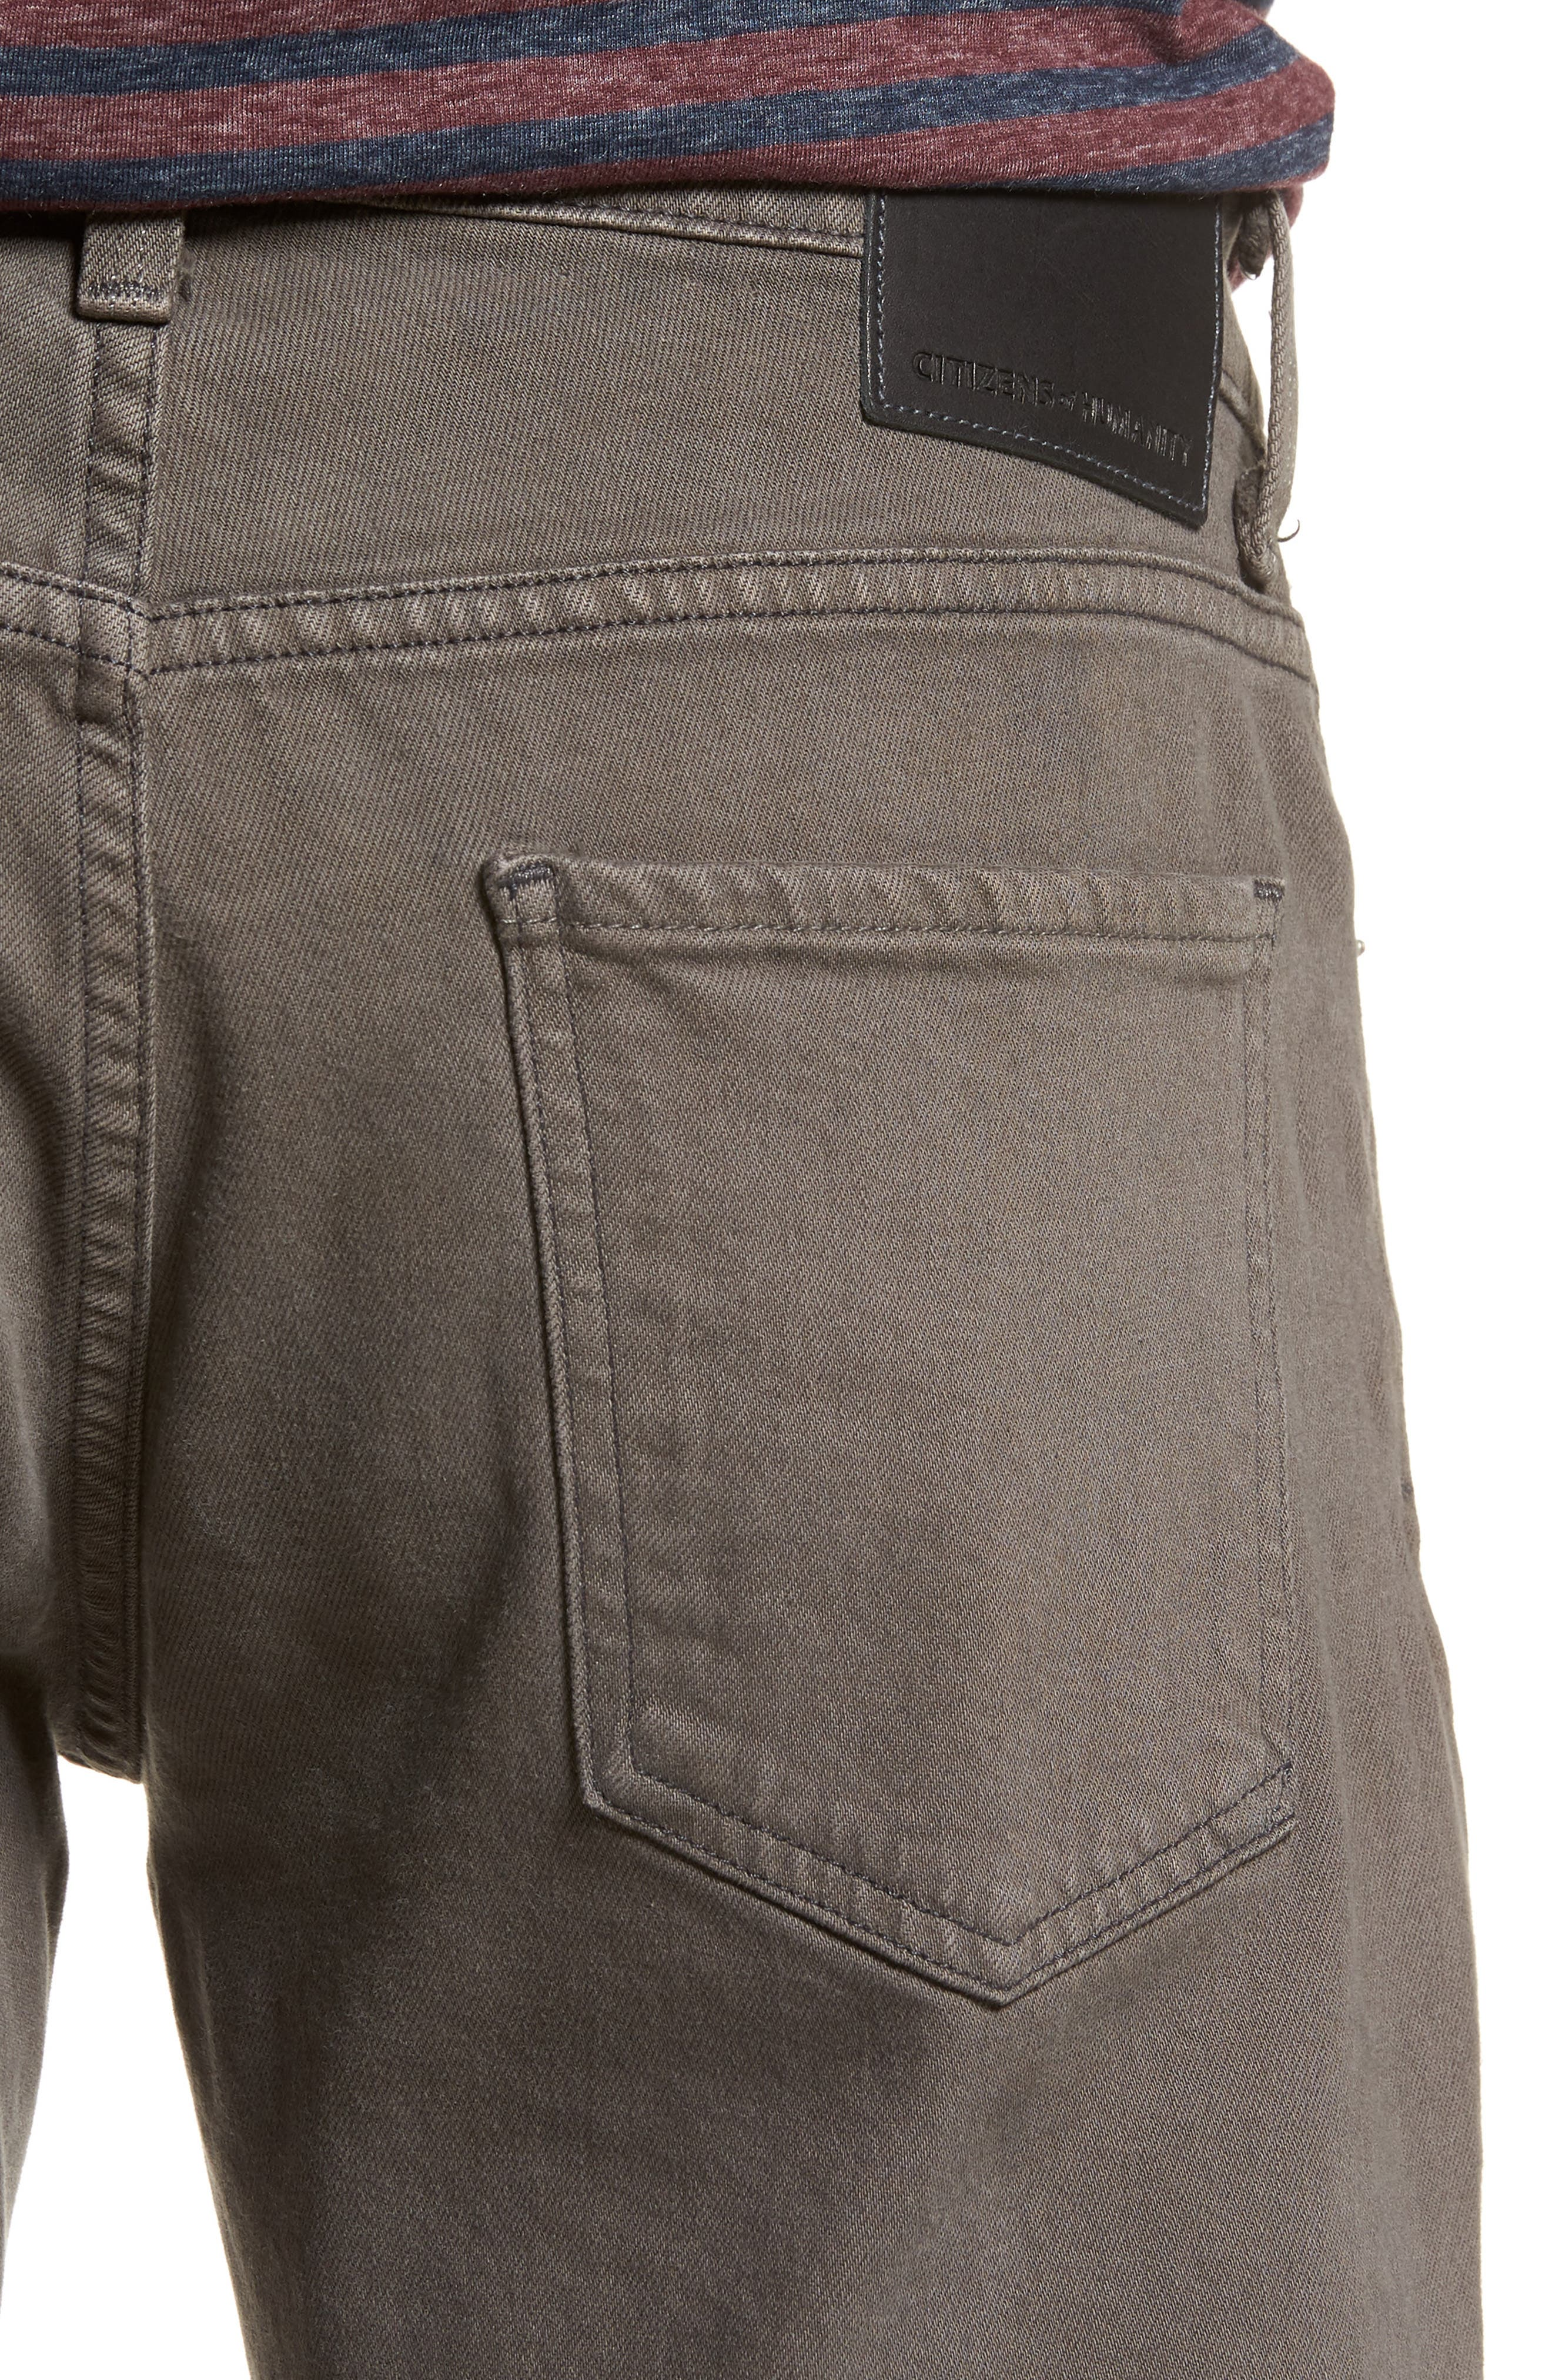 CITIZENS OF HUMANITY,                             Core Slim Fit Jeans,                             Alternate thumbnail 4, color,                             FALLBROOK